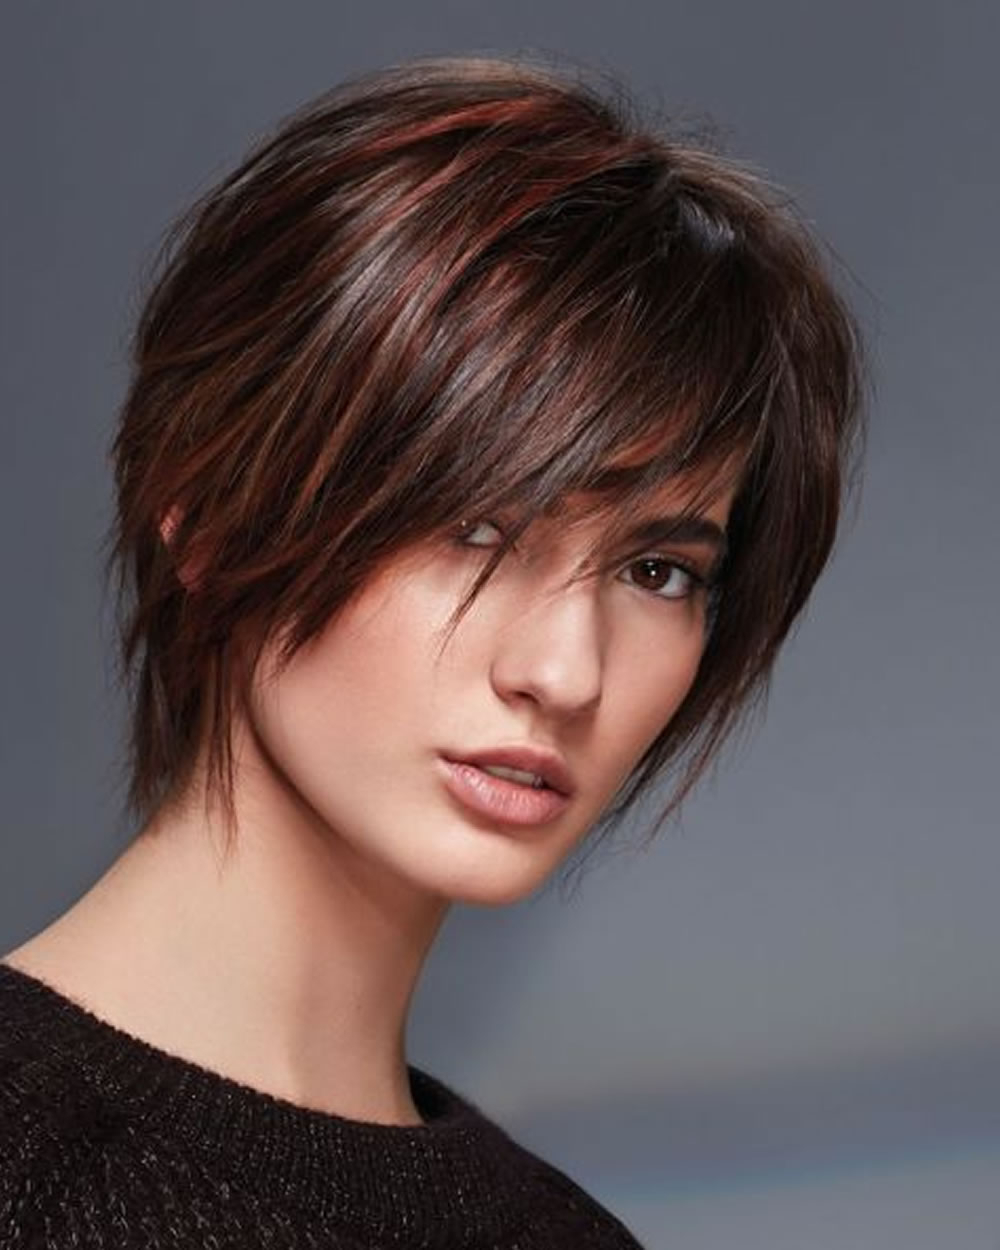 Top 20 Matchless Short Haircuts For Women With Round Faces 2018 2019 Intended For Short Hairstyles For Round Face (View 21 of 25)